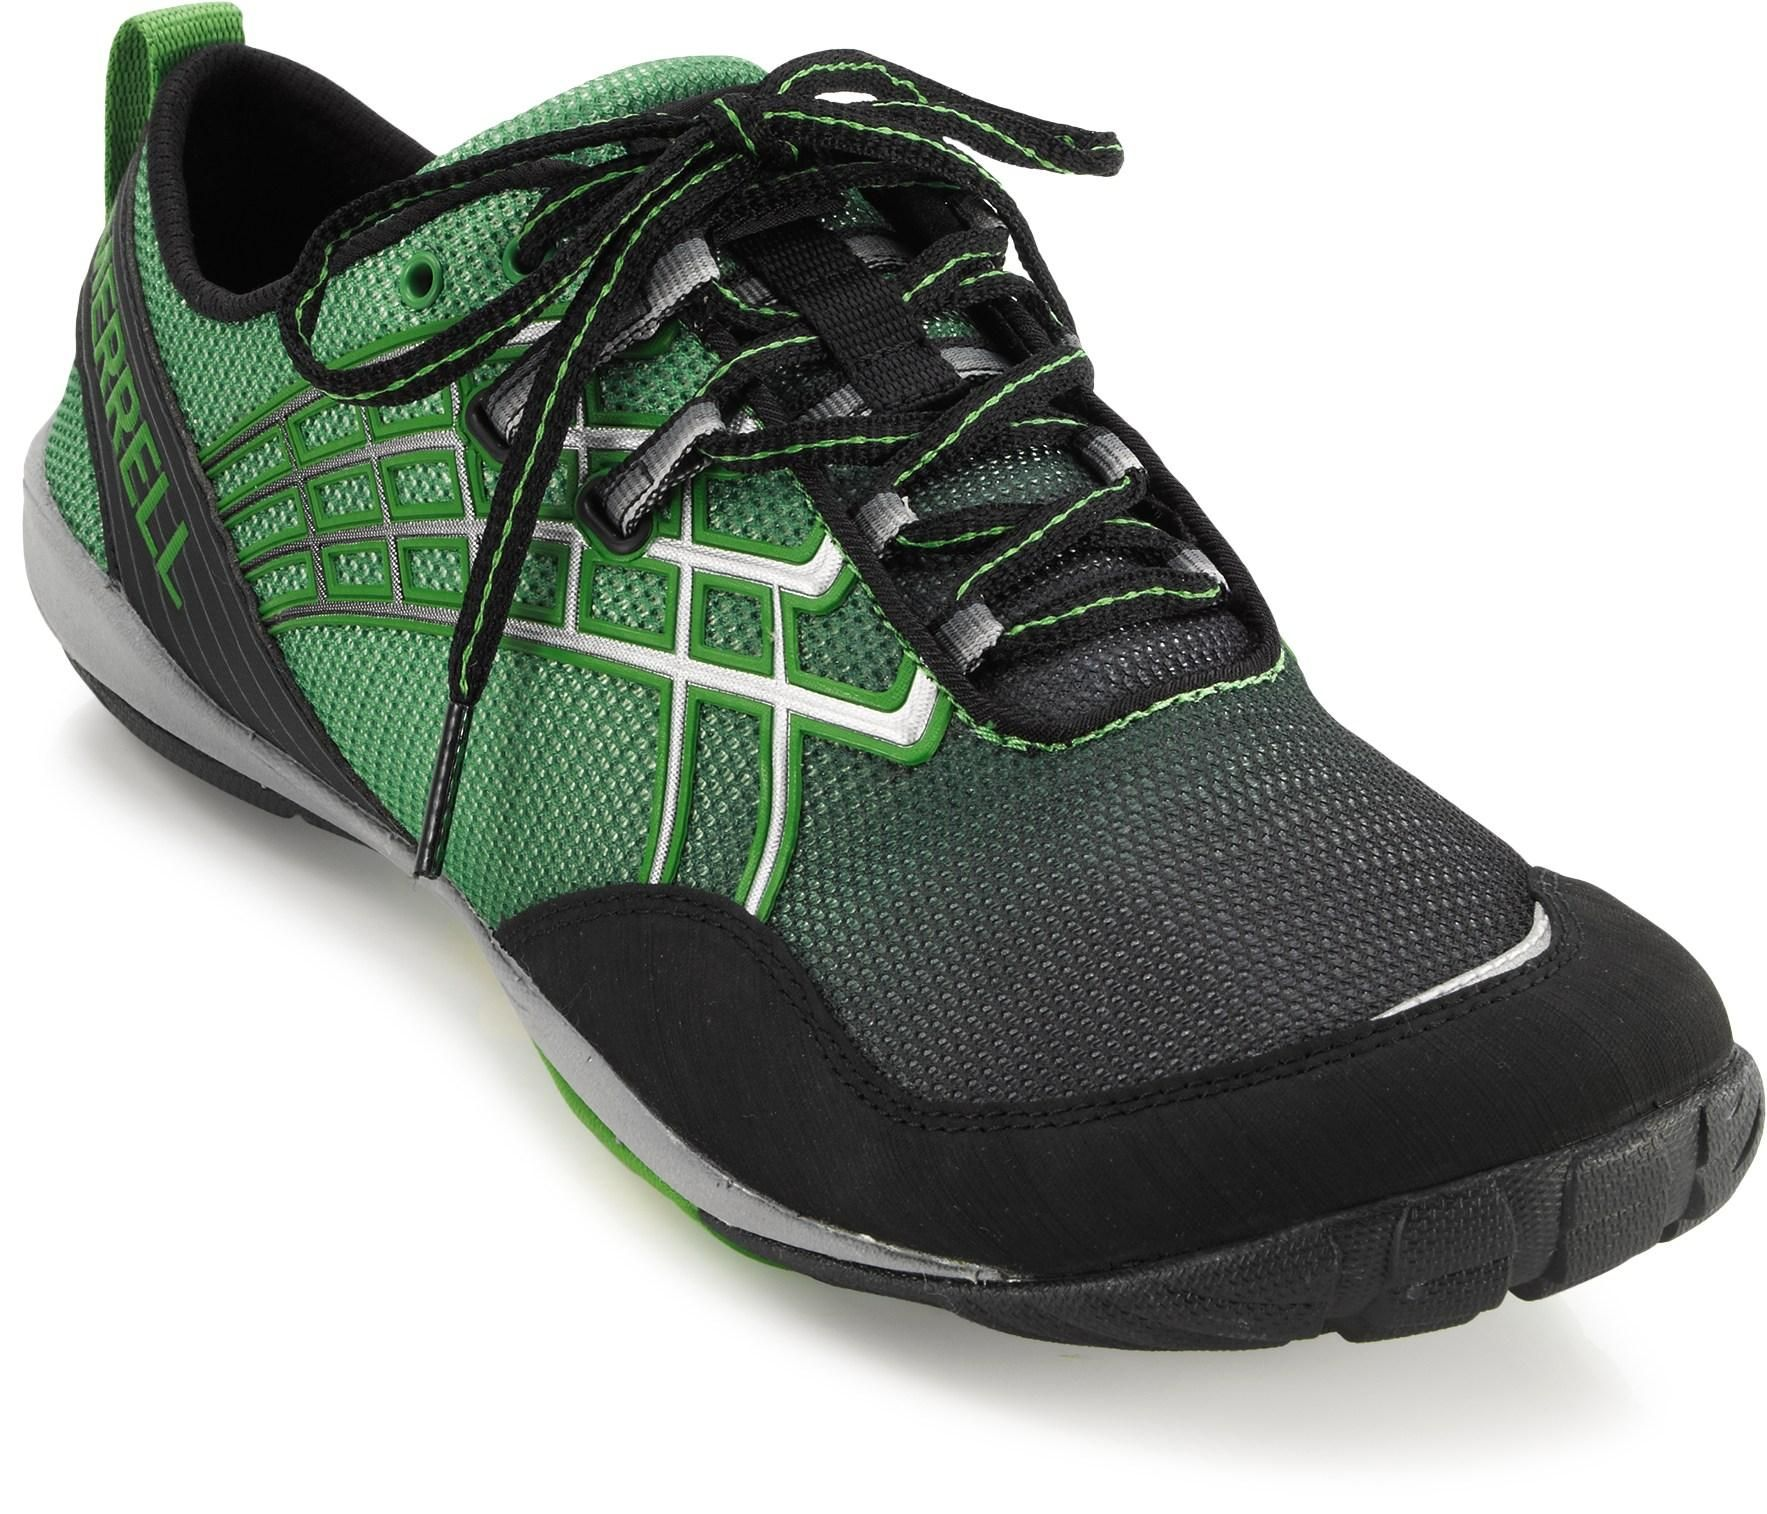 Merrell Cross Training Shoes for Men